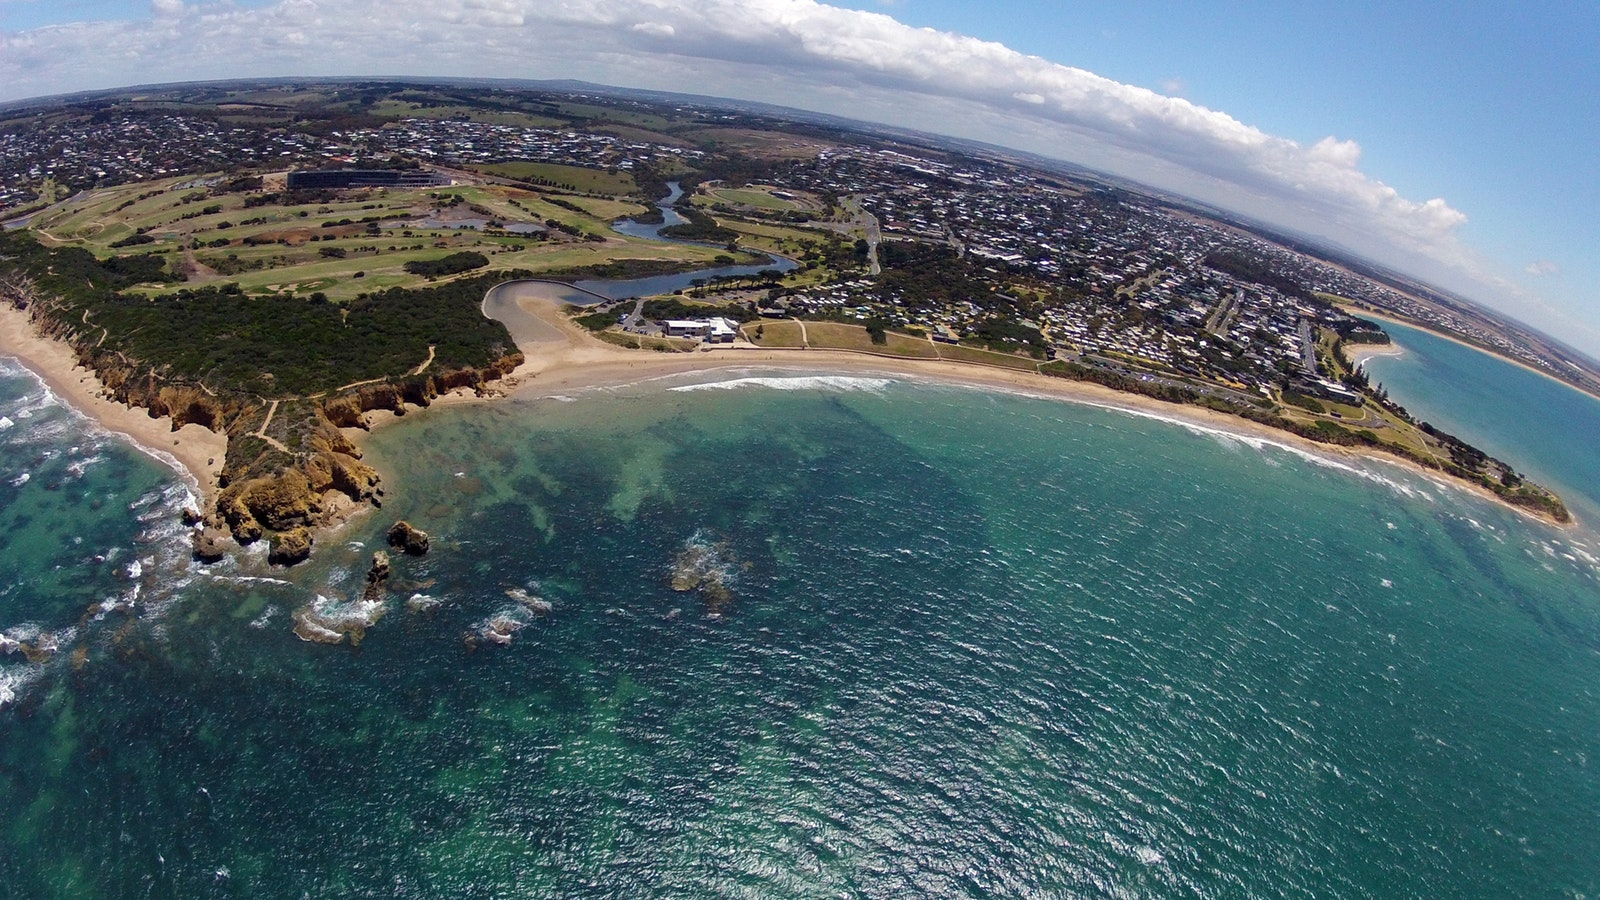 Torquay from the air with Tiger Moth World